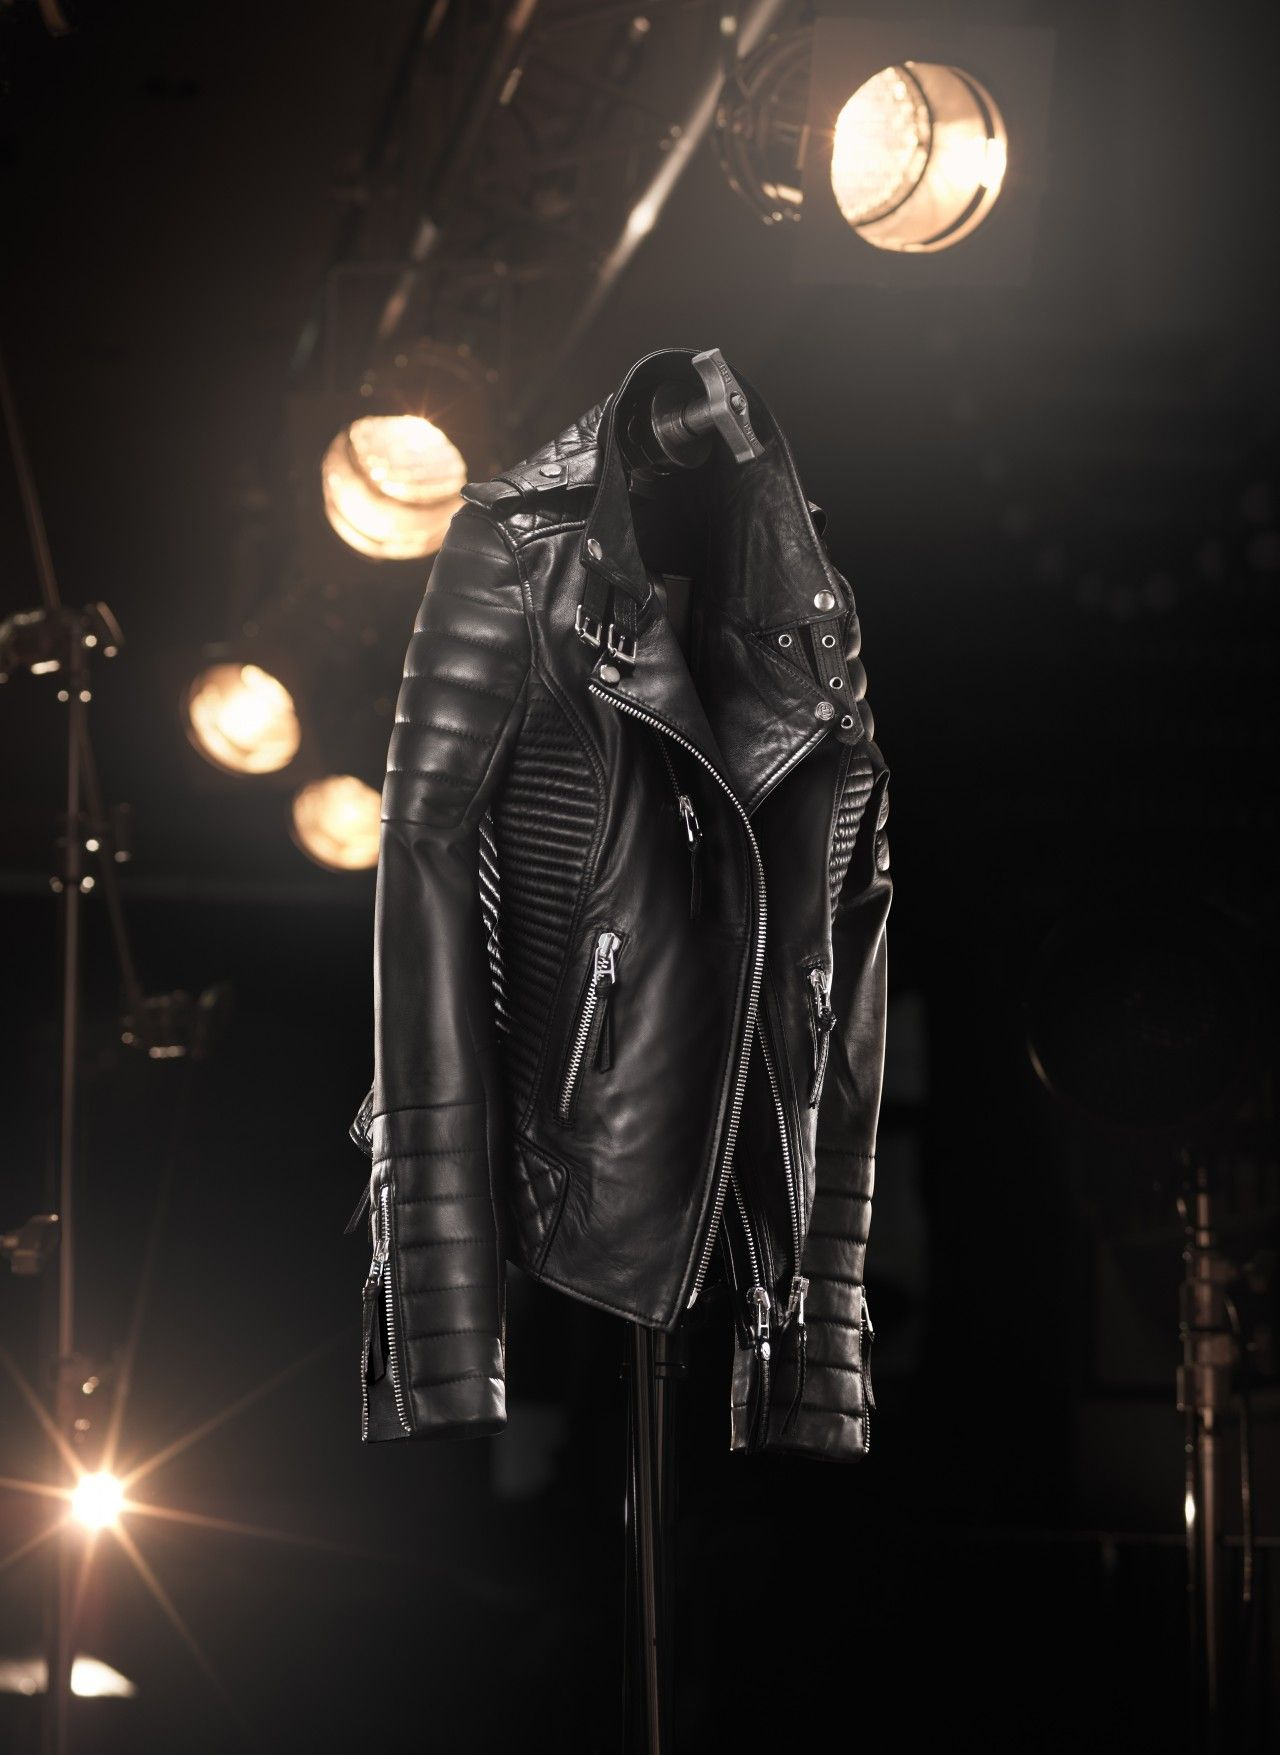 The 'Kay Michaels' Quilted Biker V.2 (Platinum Hardware) - 'Inspired by a true rock and roll soul, the Kay Michaels is legend among leathers'